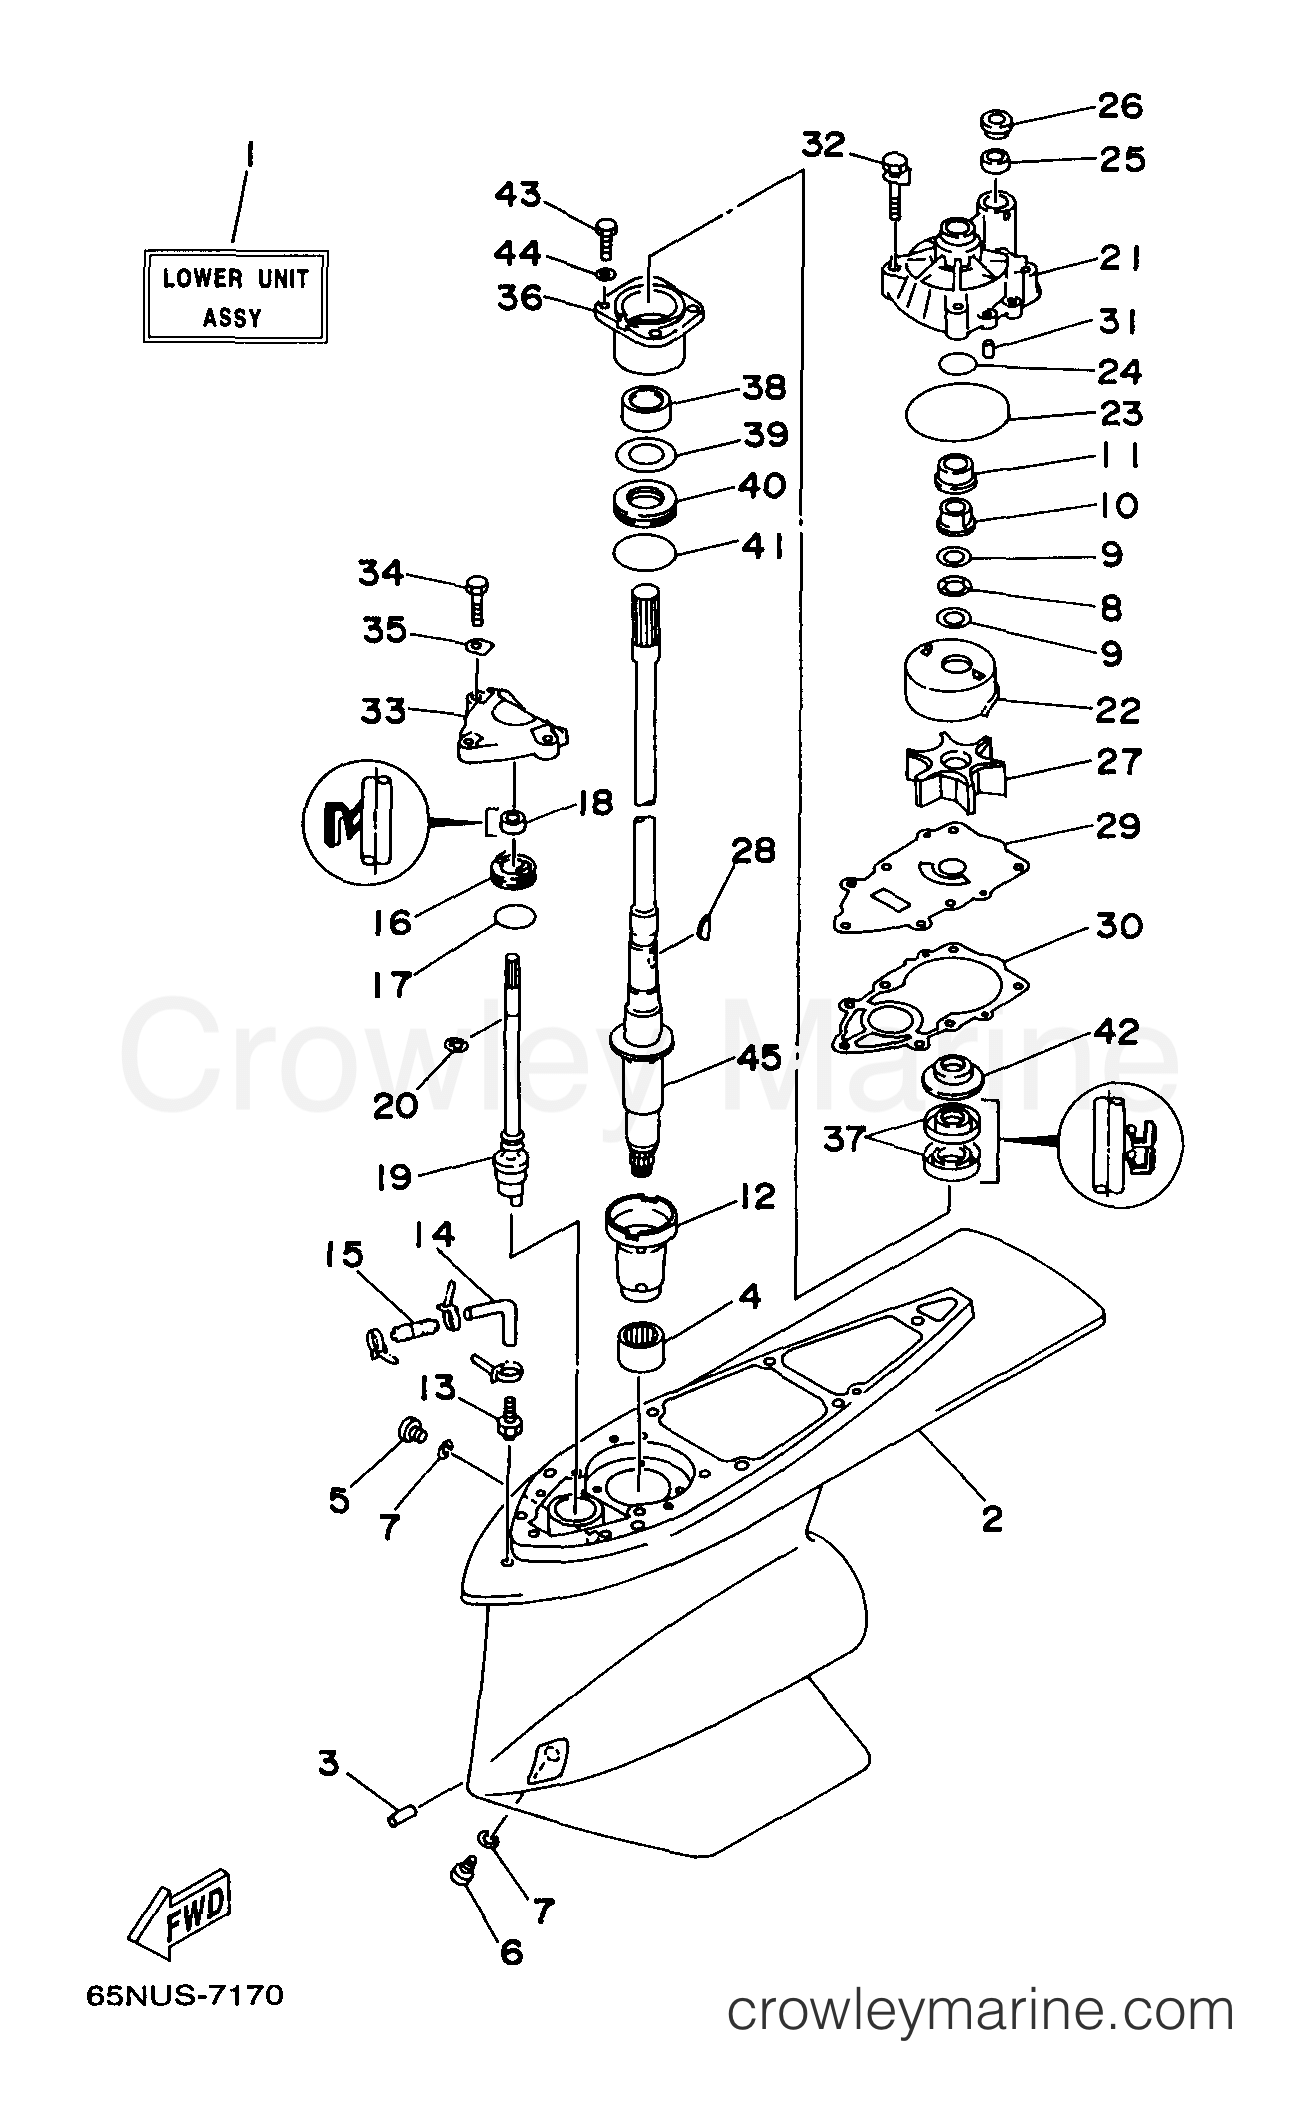 Outboard Lower Unit Diagram